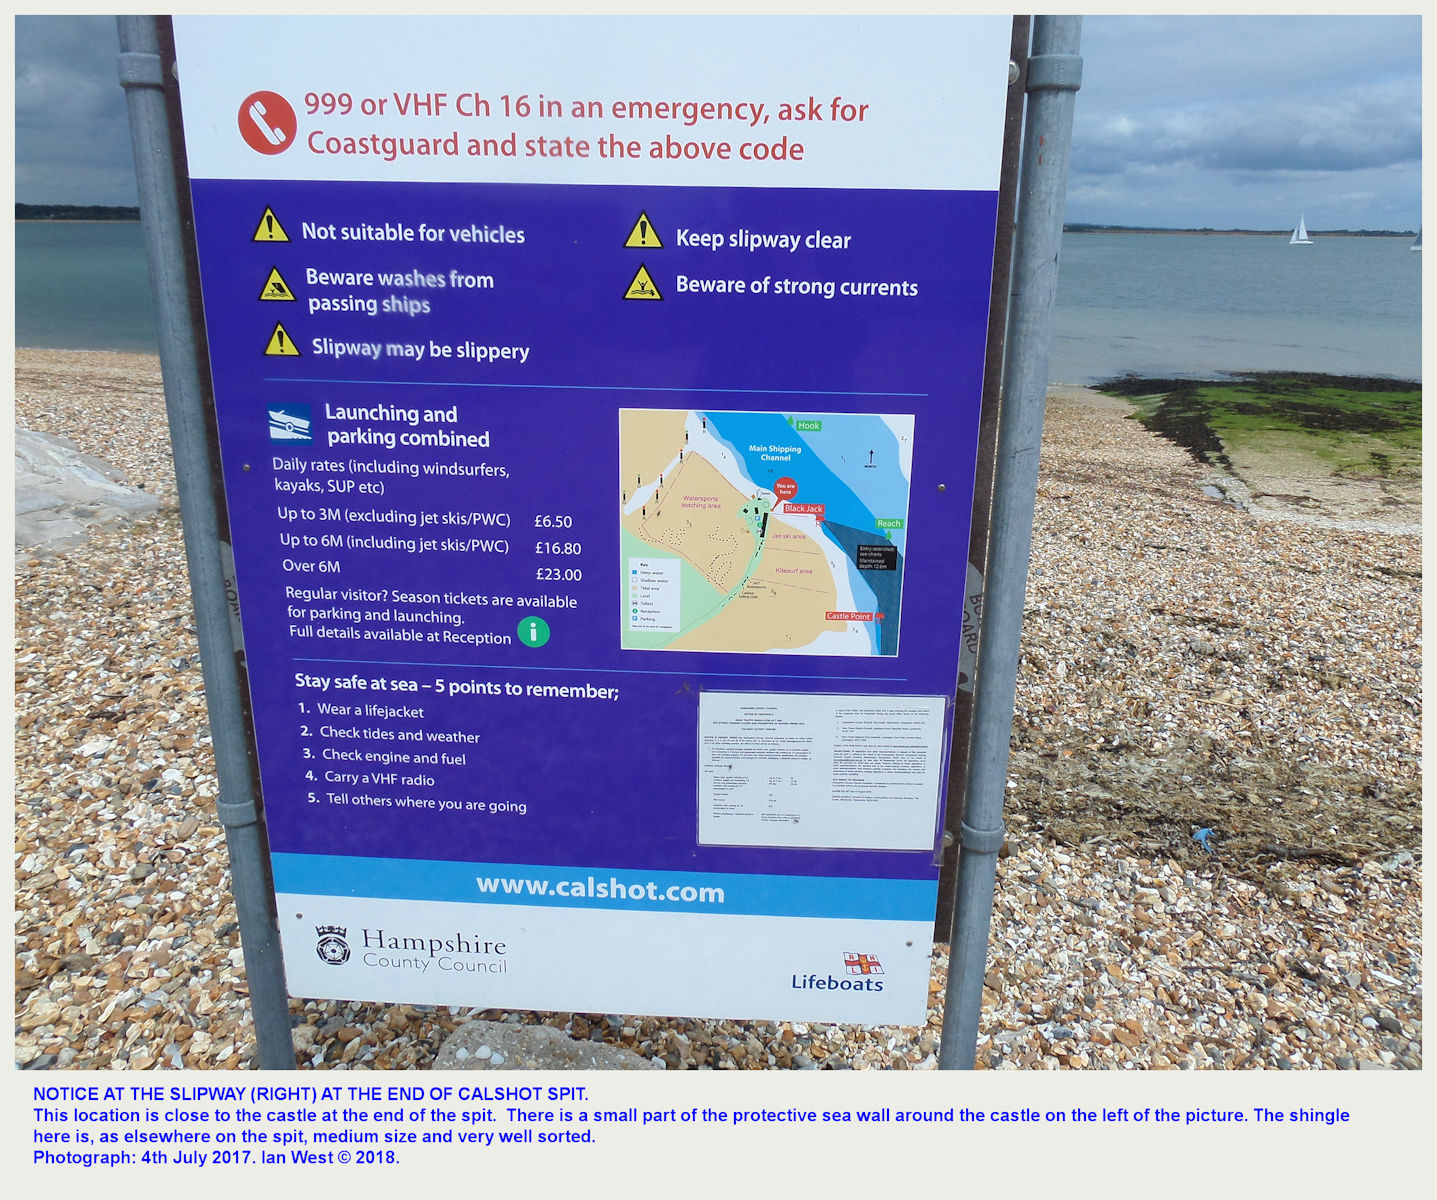 A warning notice at a concrete launching ramp at the end of Calshot Spit, adjacent to the castle, as seen in 2017